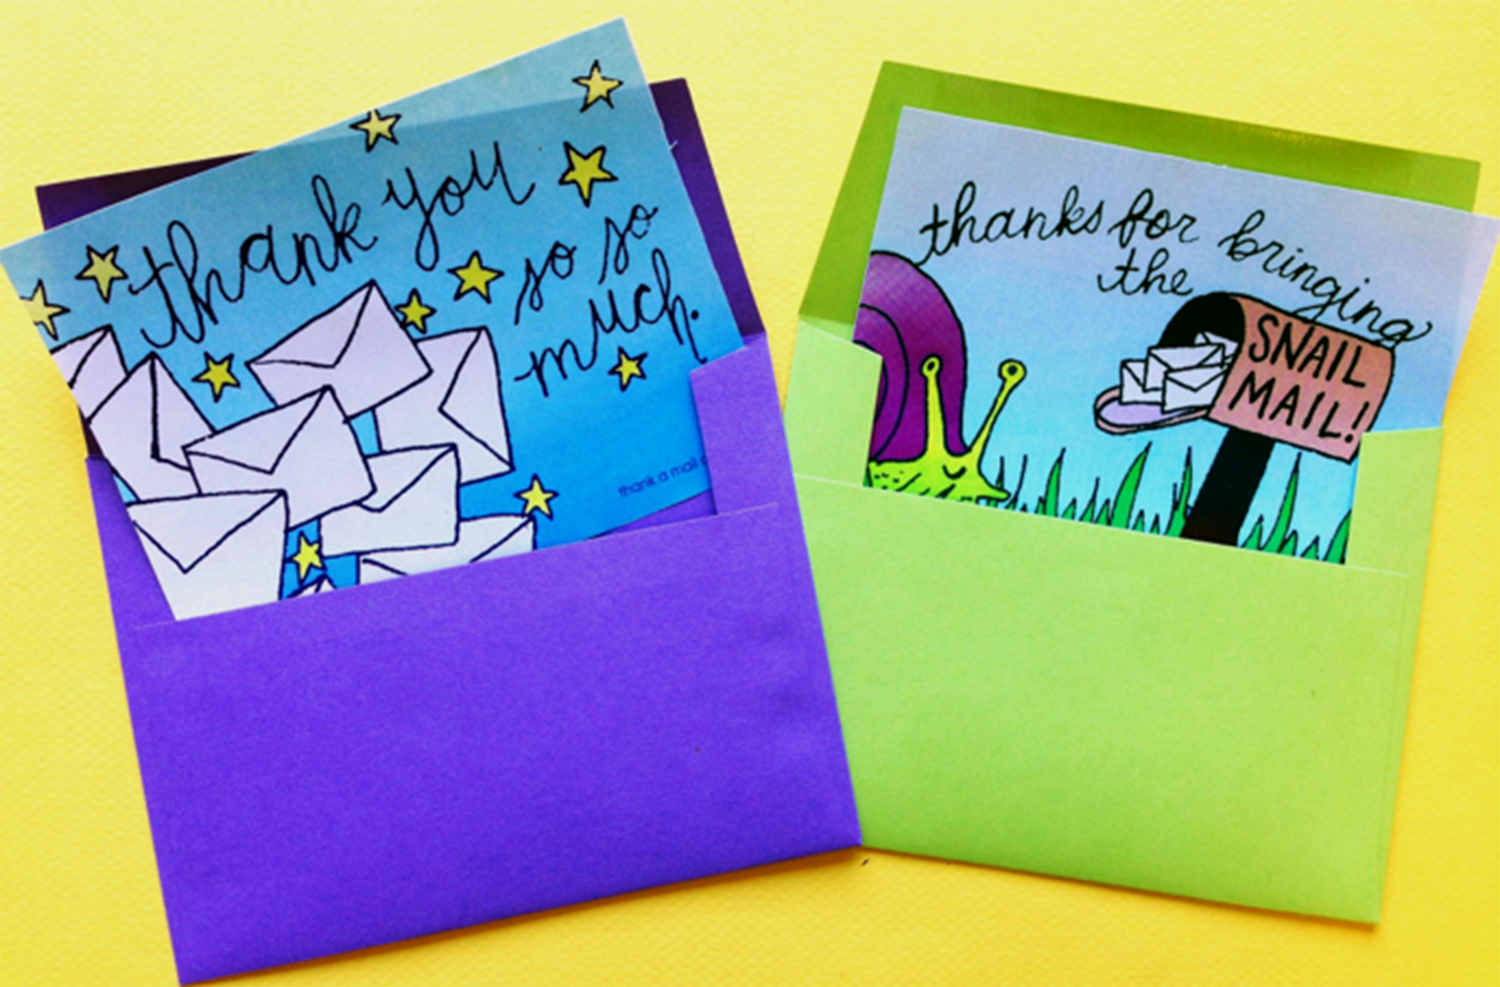 National Thank A Mail Carrier Day | Smudge Ink | Image 3